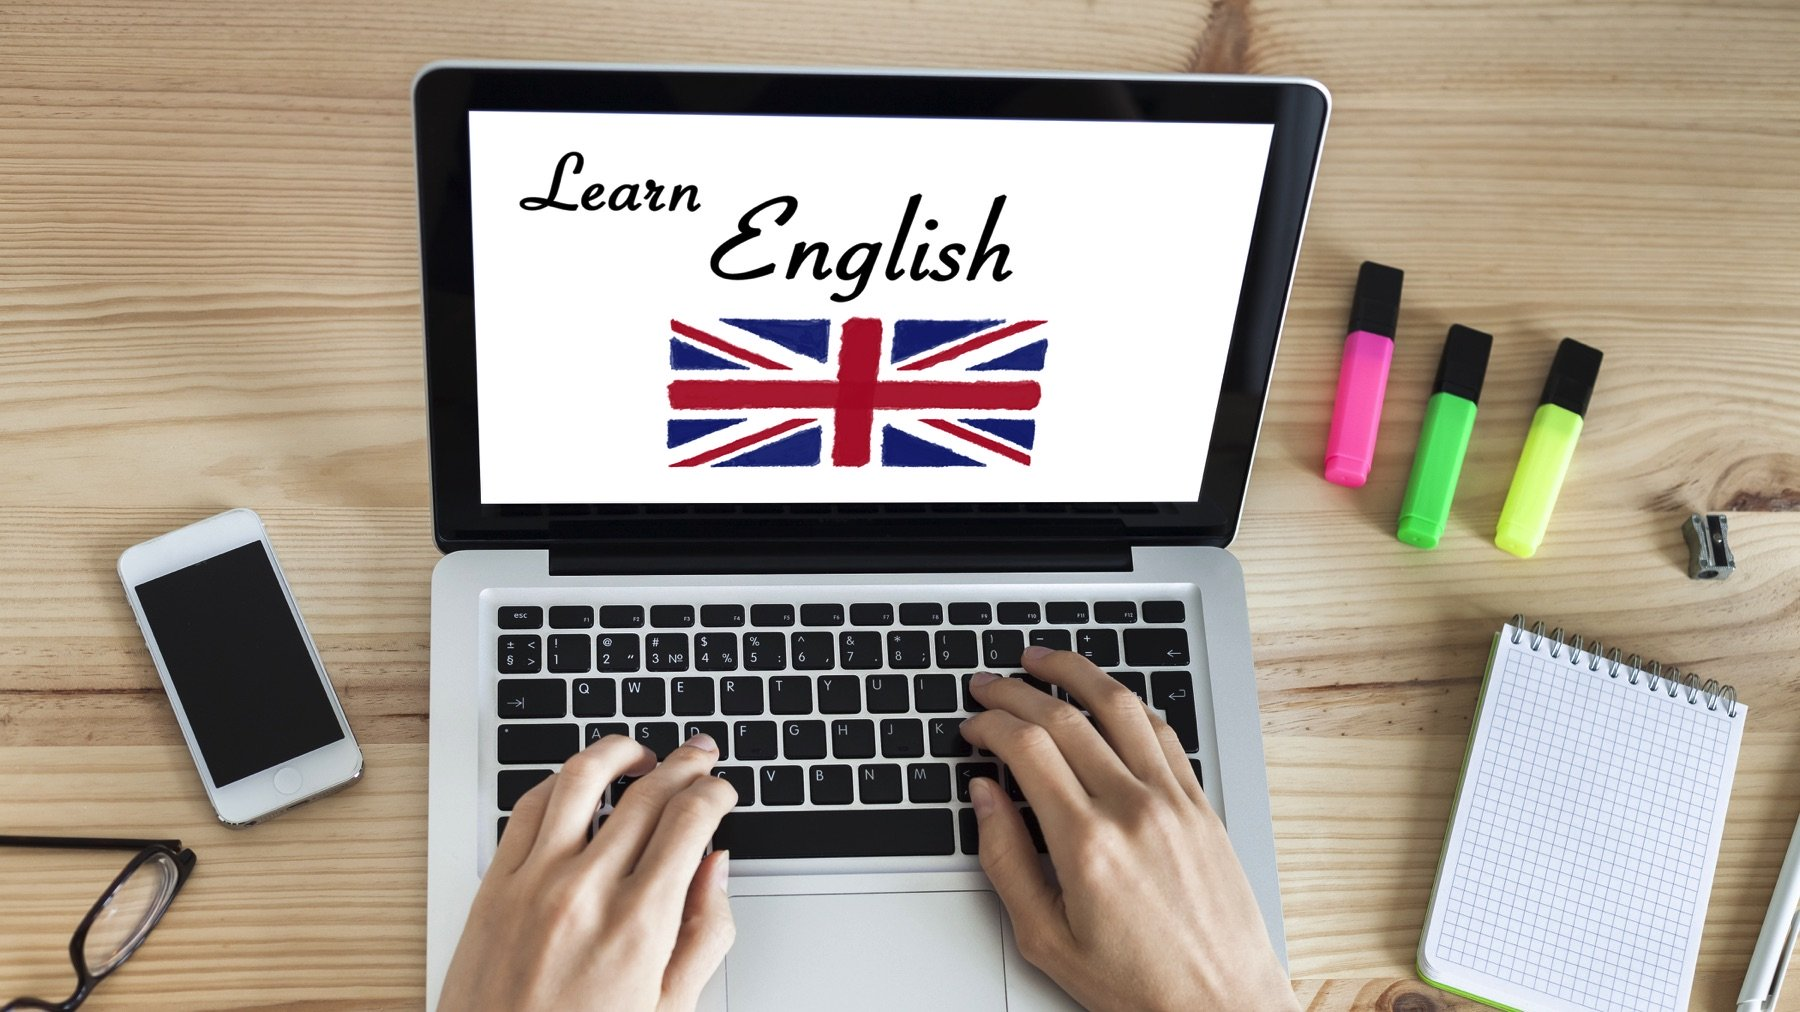 10 Requirements For Online English Teaching Jobs